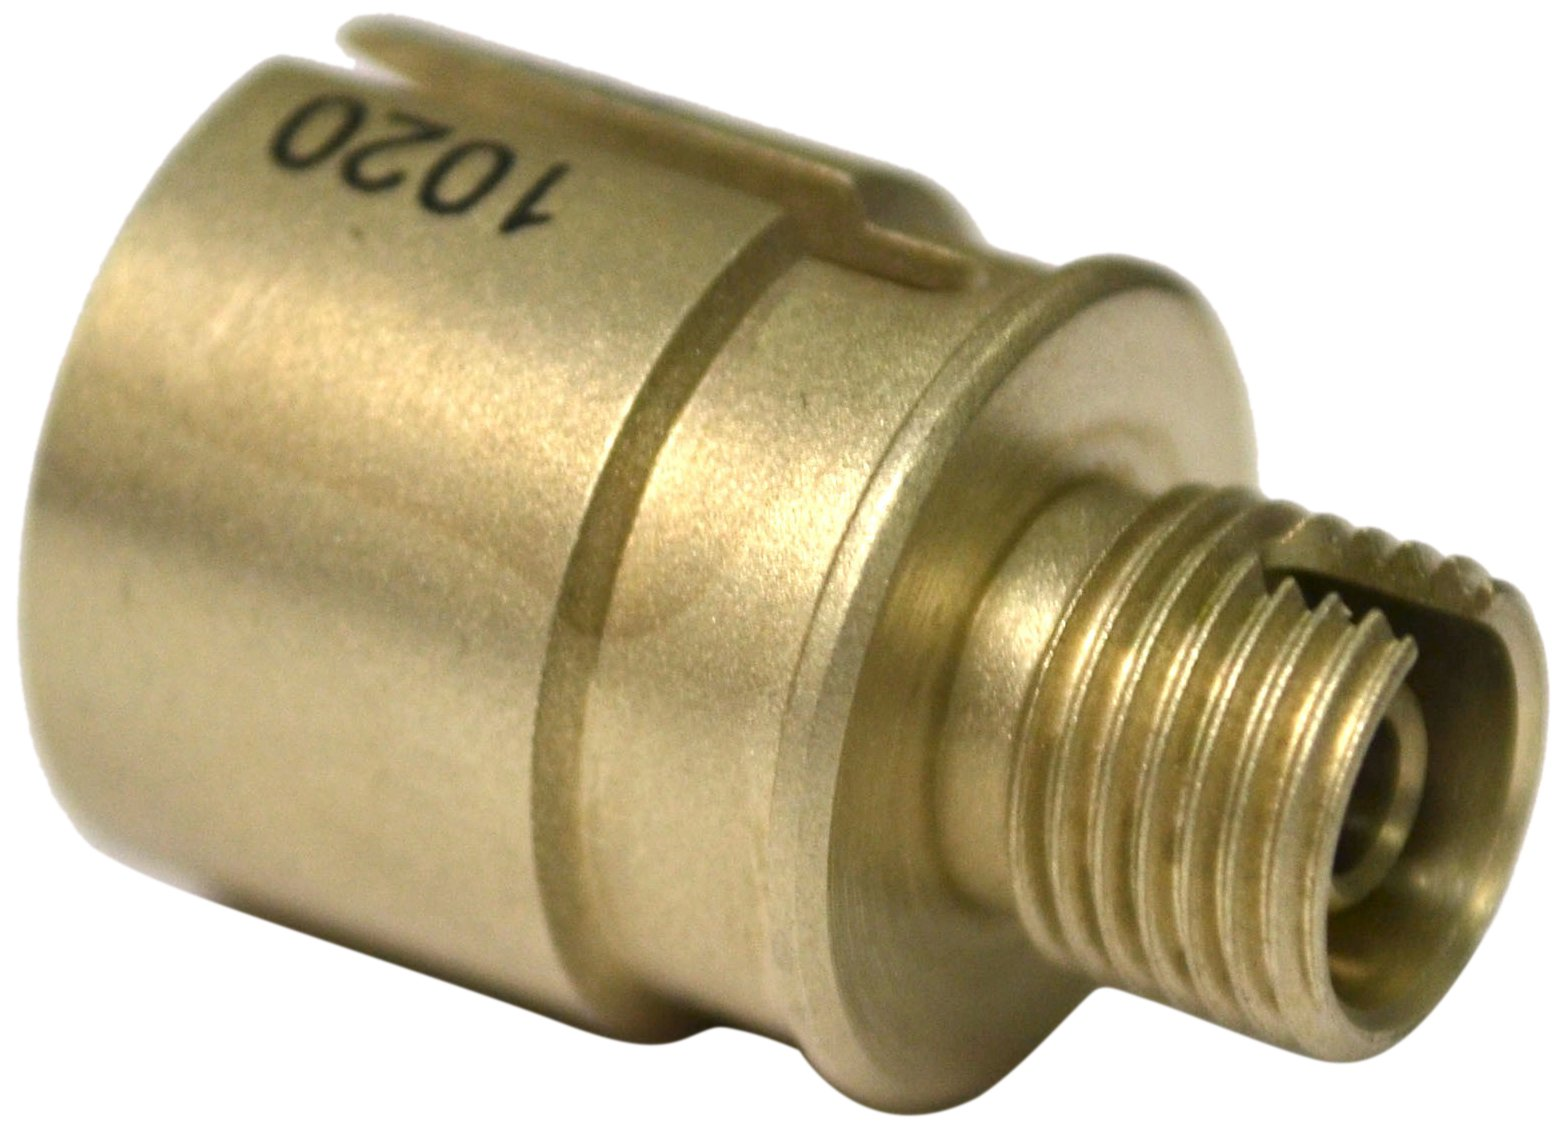 Greenlee T1020 Fiber Optic SOC and UCI Instrument Adapter